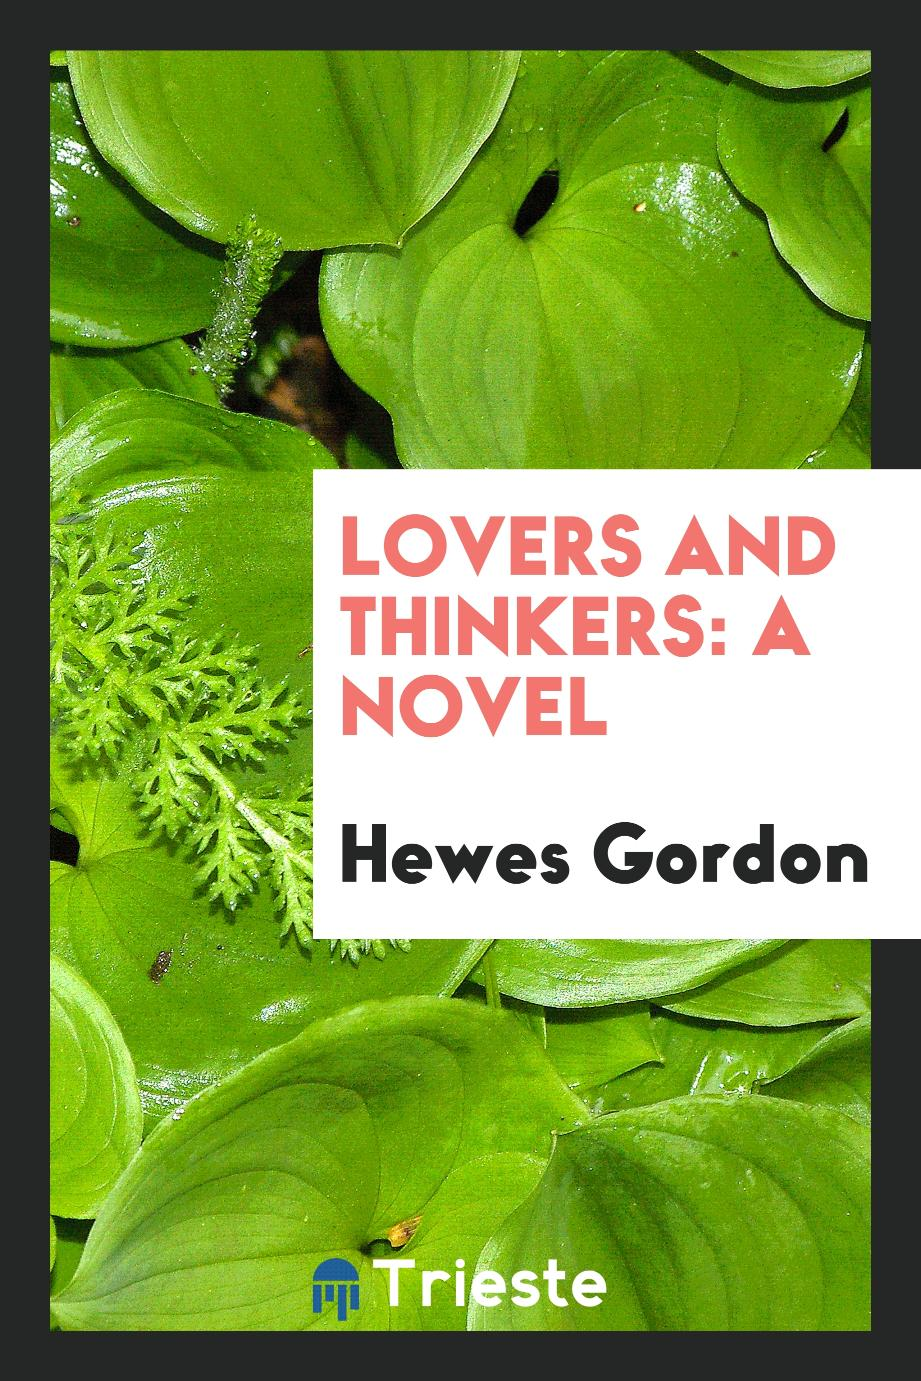 Lovers and thinkers: a novel